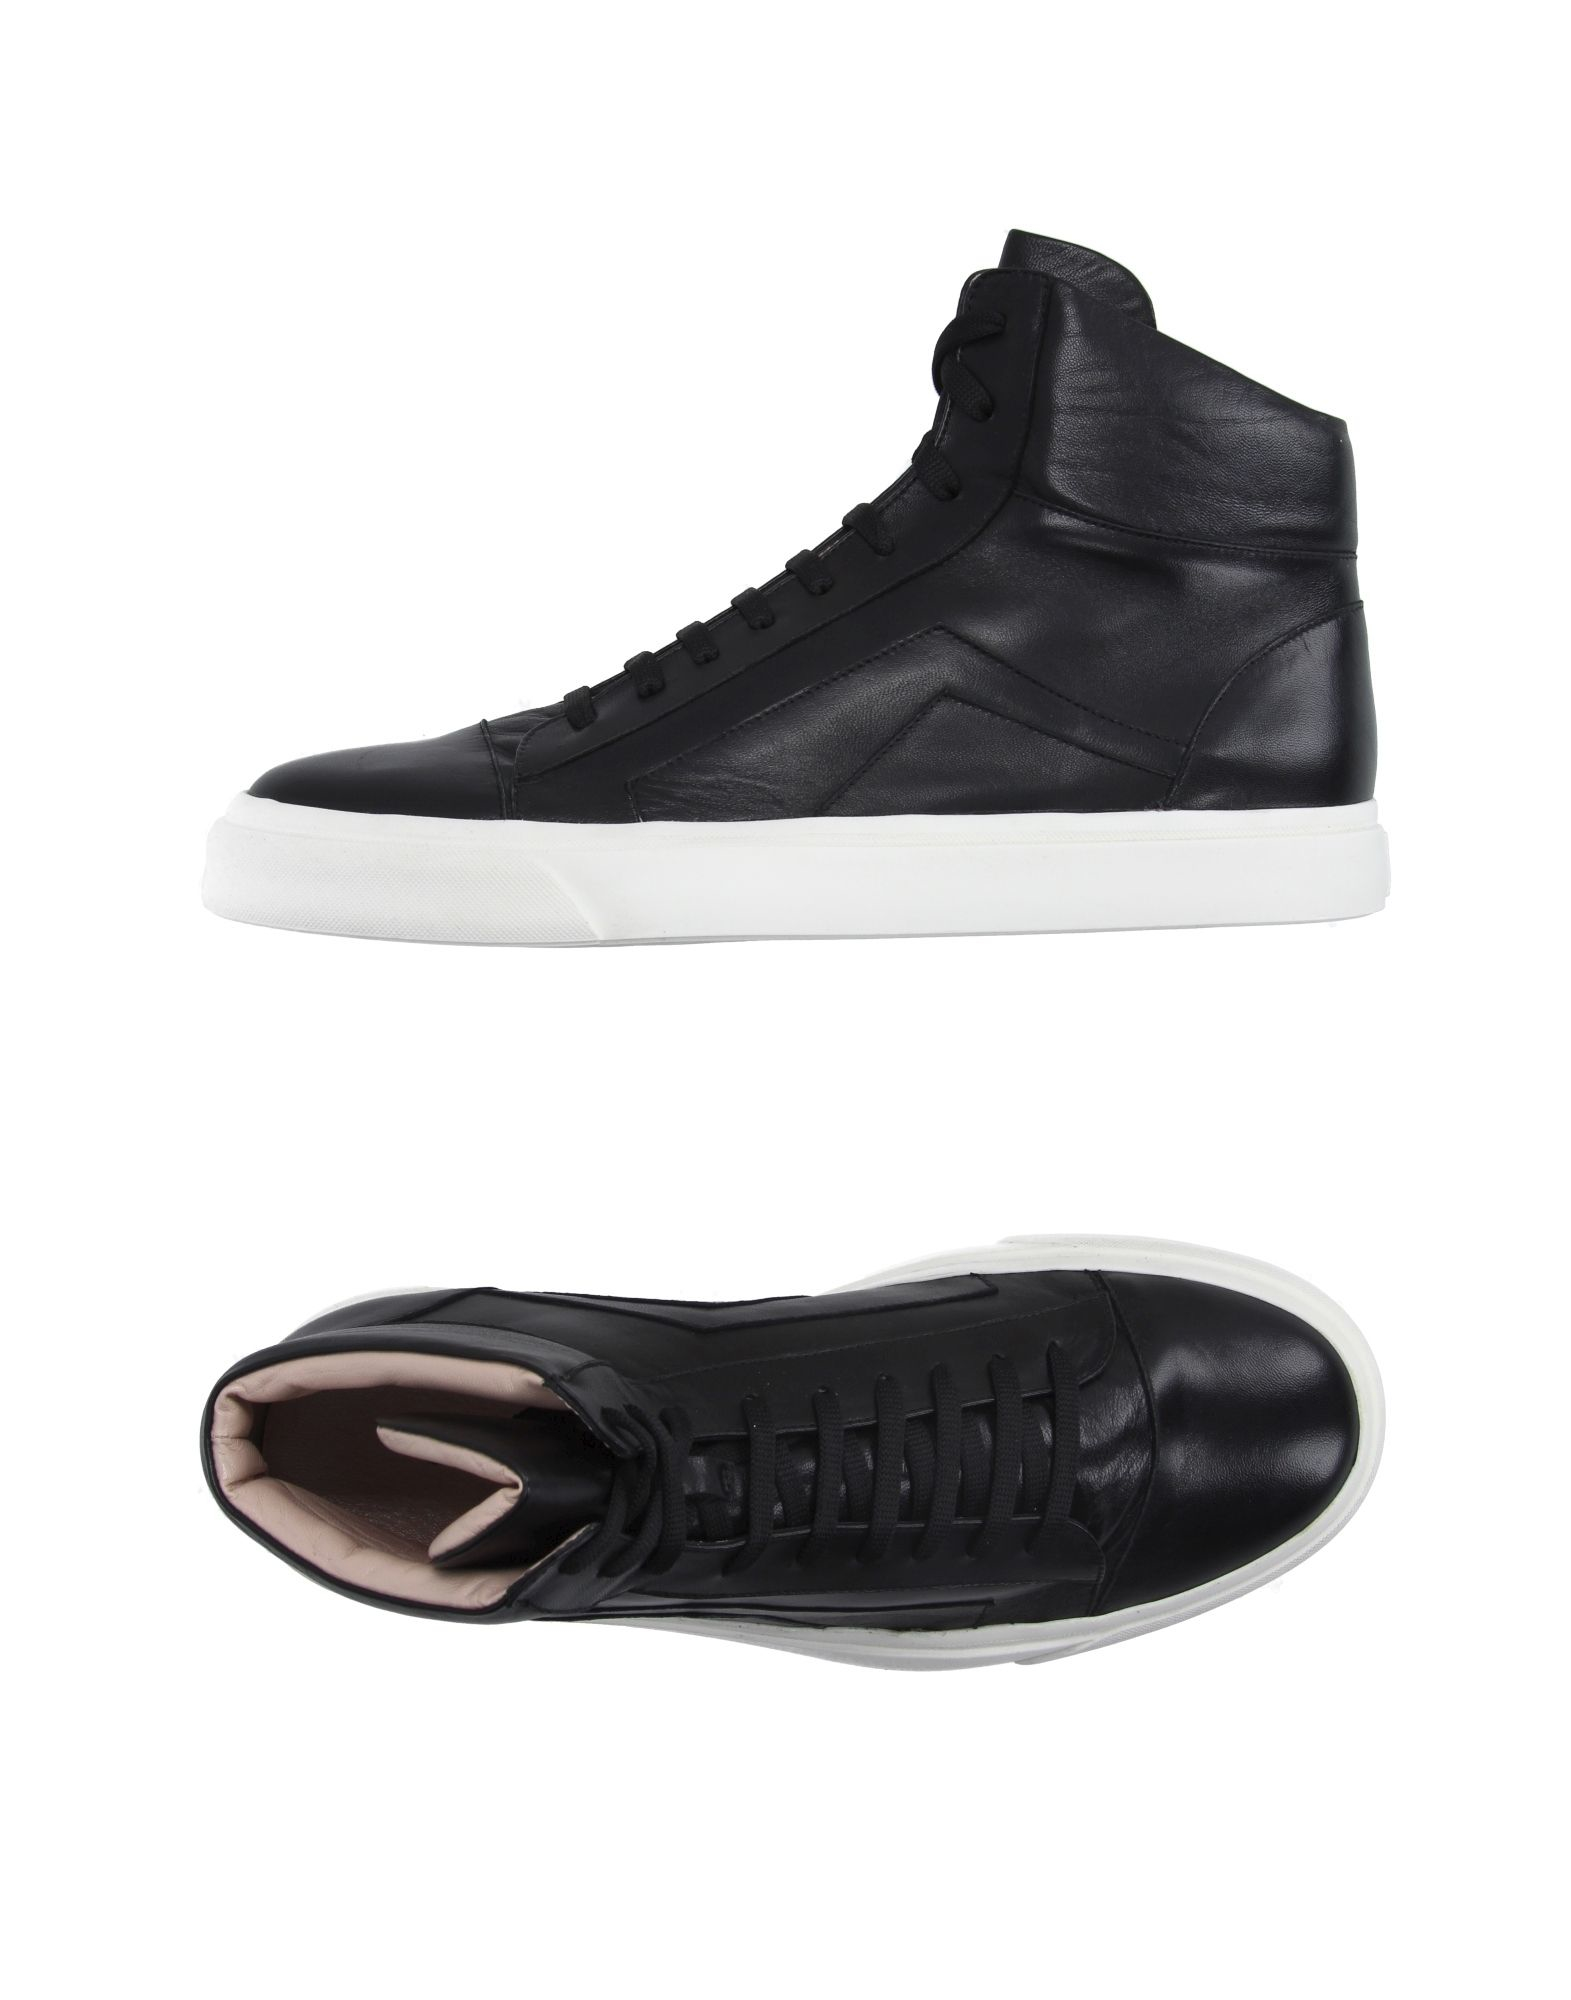 Giorgio Fabiani High Tops Amp Trainers In Black For Men Lyst